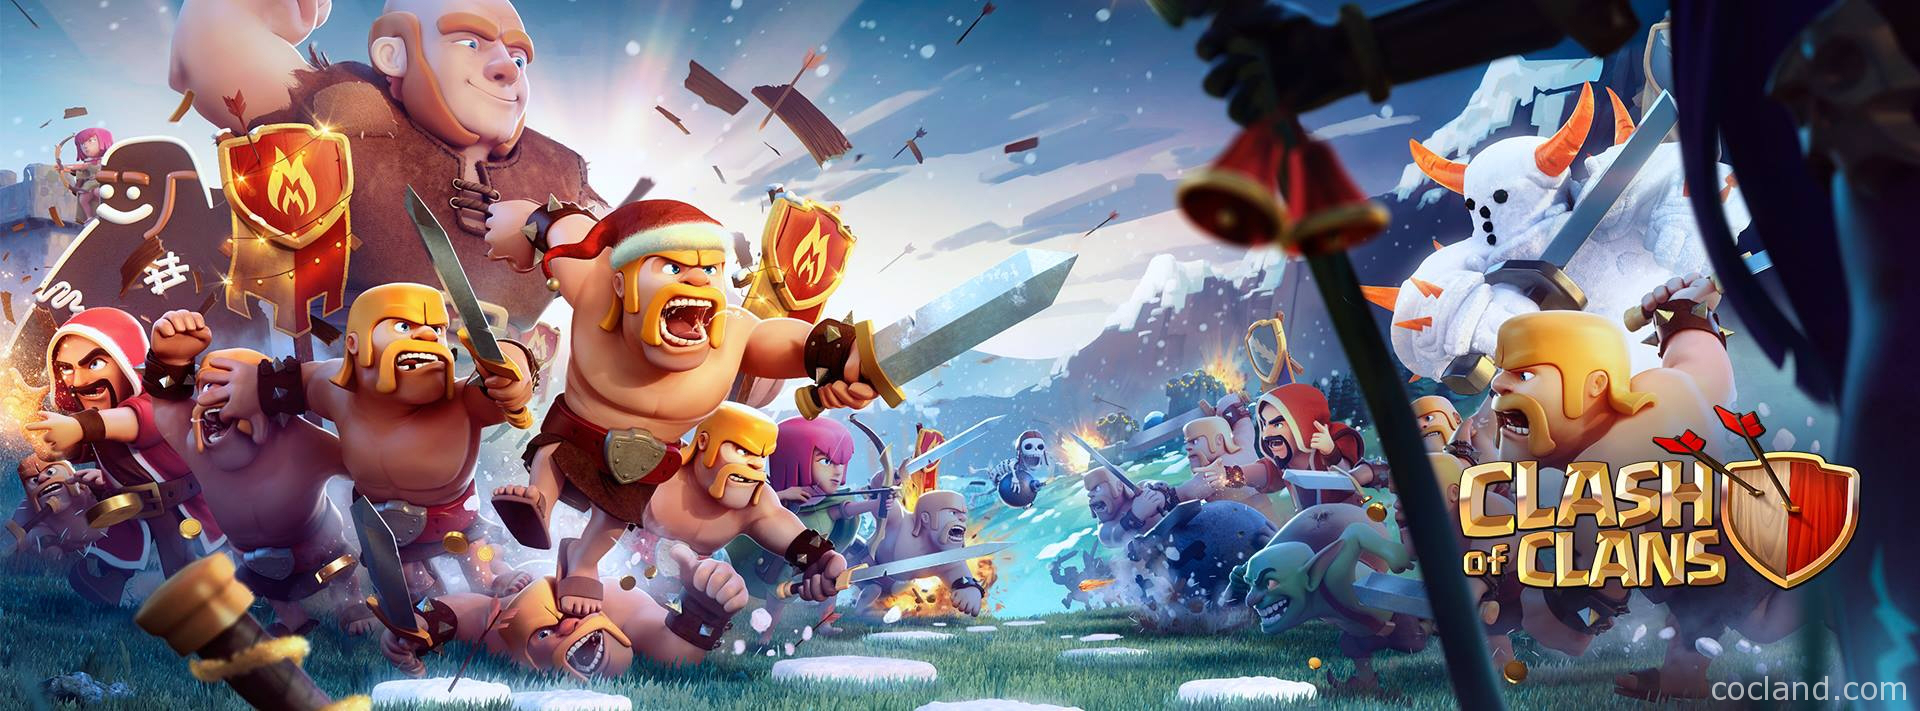 Free Download Clash Of Clans Pekka Wallpaper Dota 2 And E